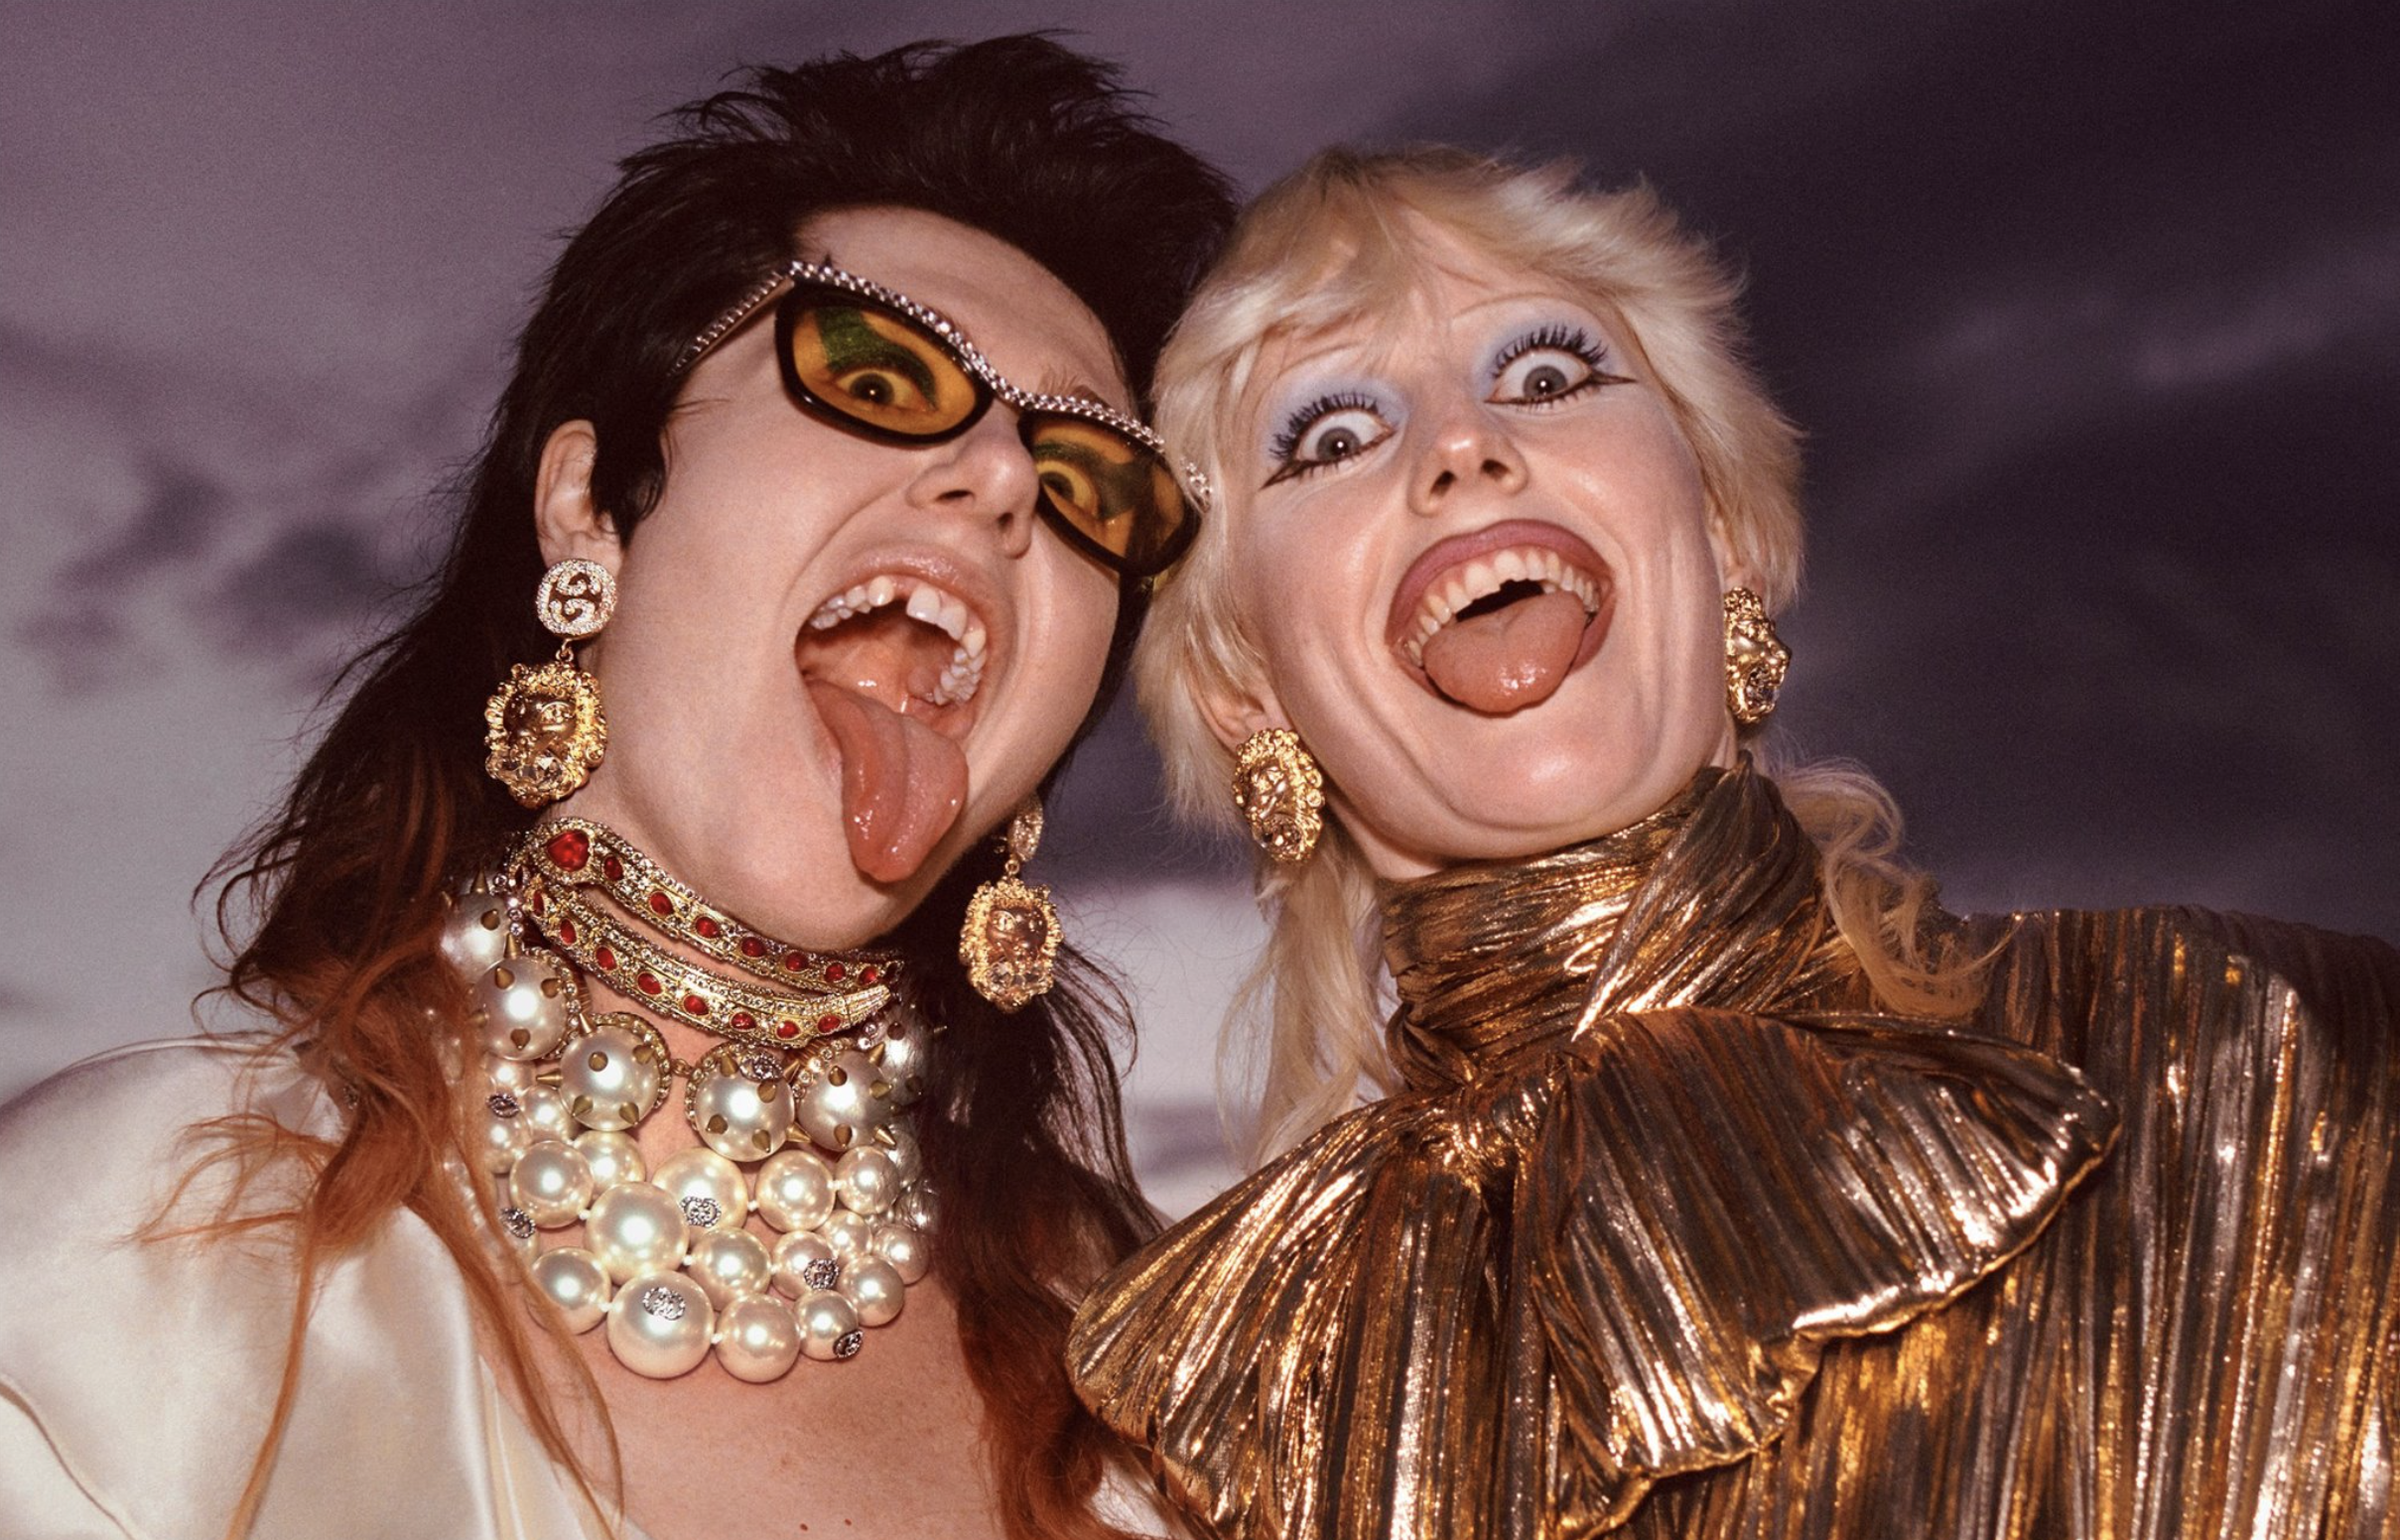 Dani and Amy Taylor from Amyl and The Sniffers appear in the Gucci Pre-Fall 2019 campaign